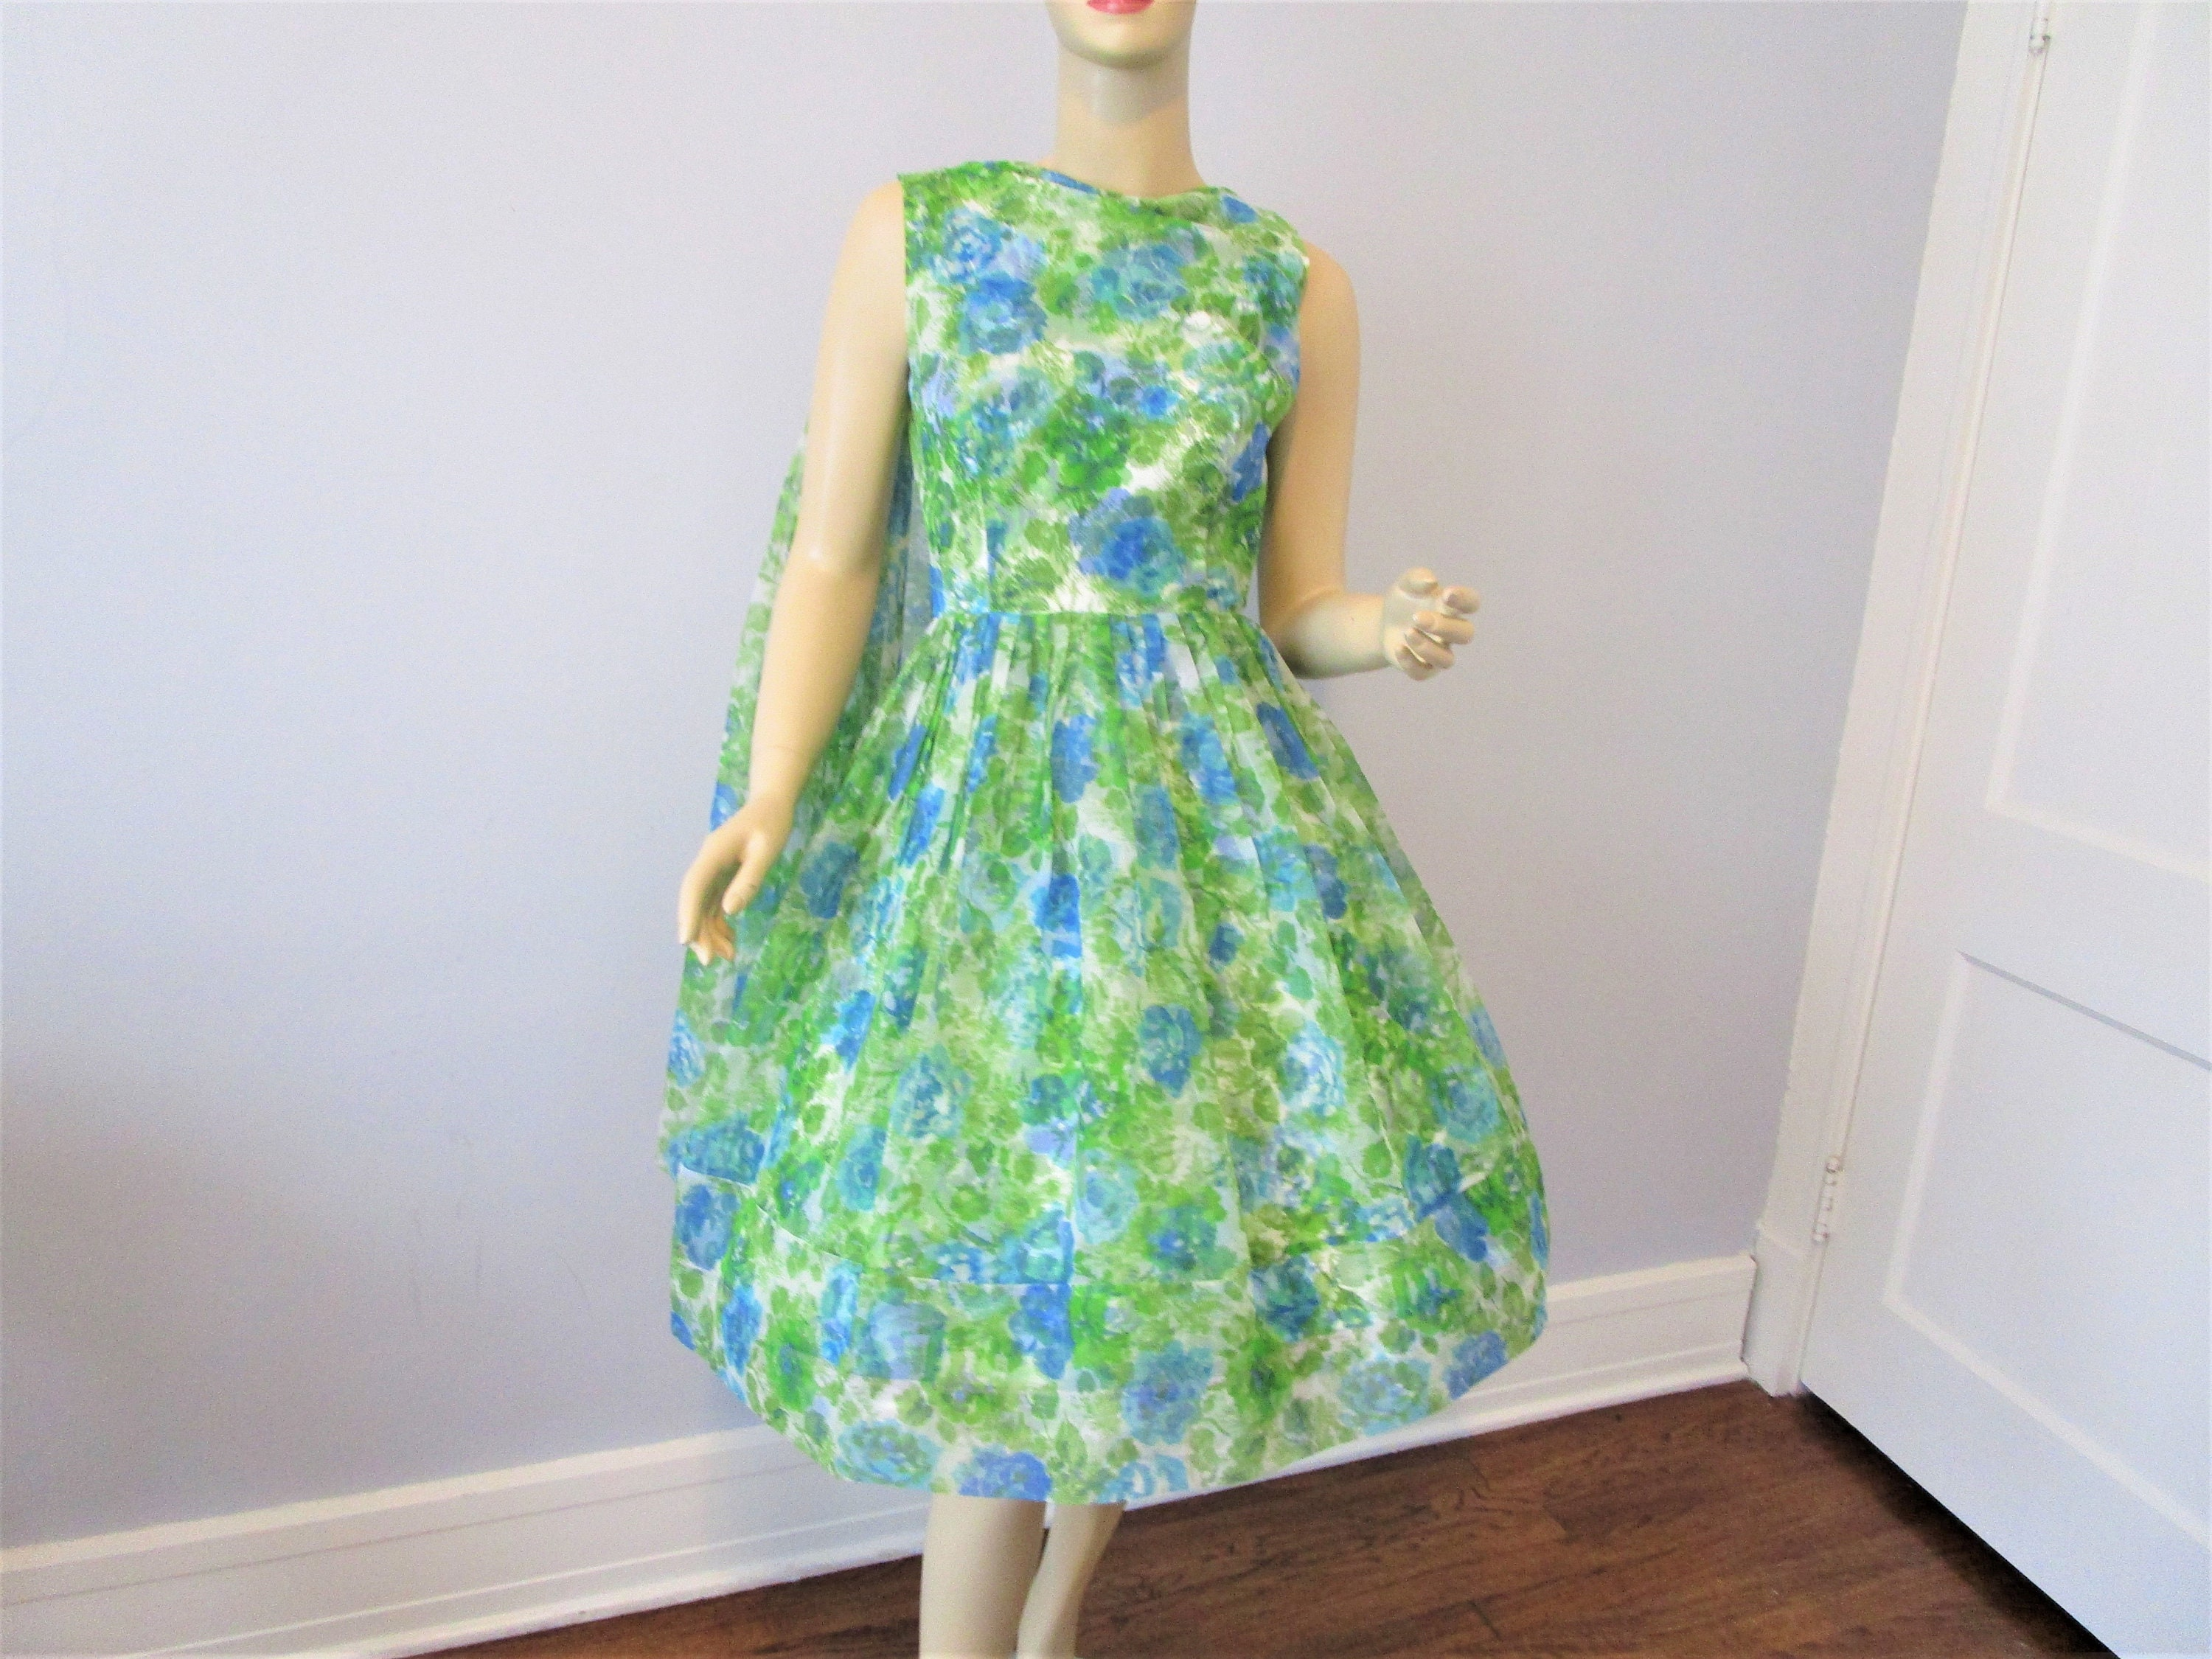 Vintage Scarf Styles -1920s to 1960s Fit  Flare Dress Vintage 1950S Blue Green Floral Chiffon Sleeveless Scarf Cocktail Party $0.00 AT vintagedancer.com